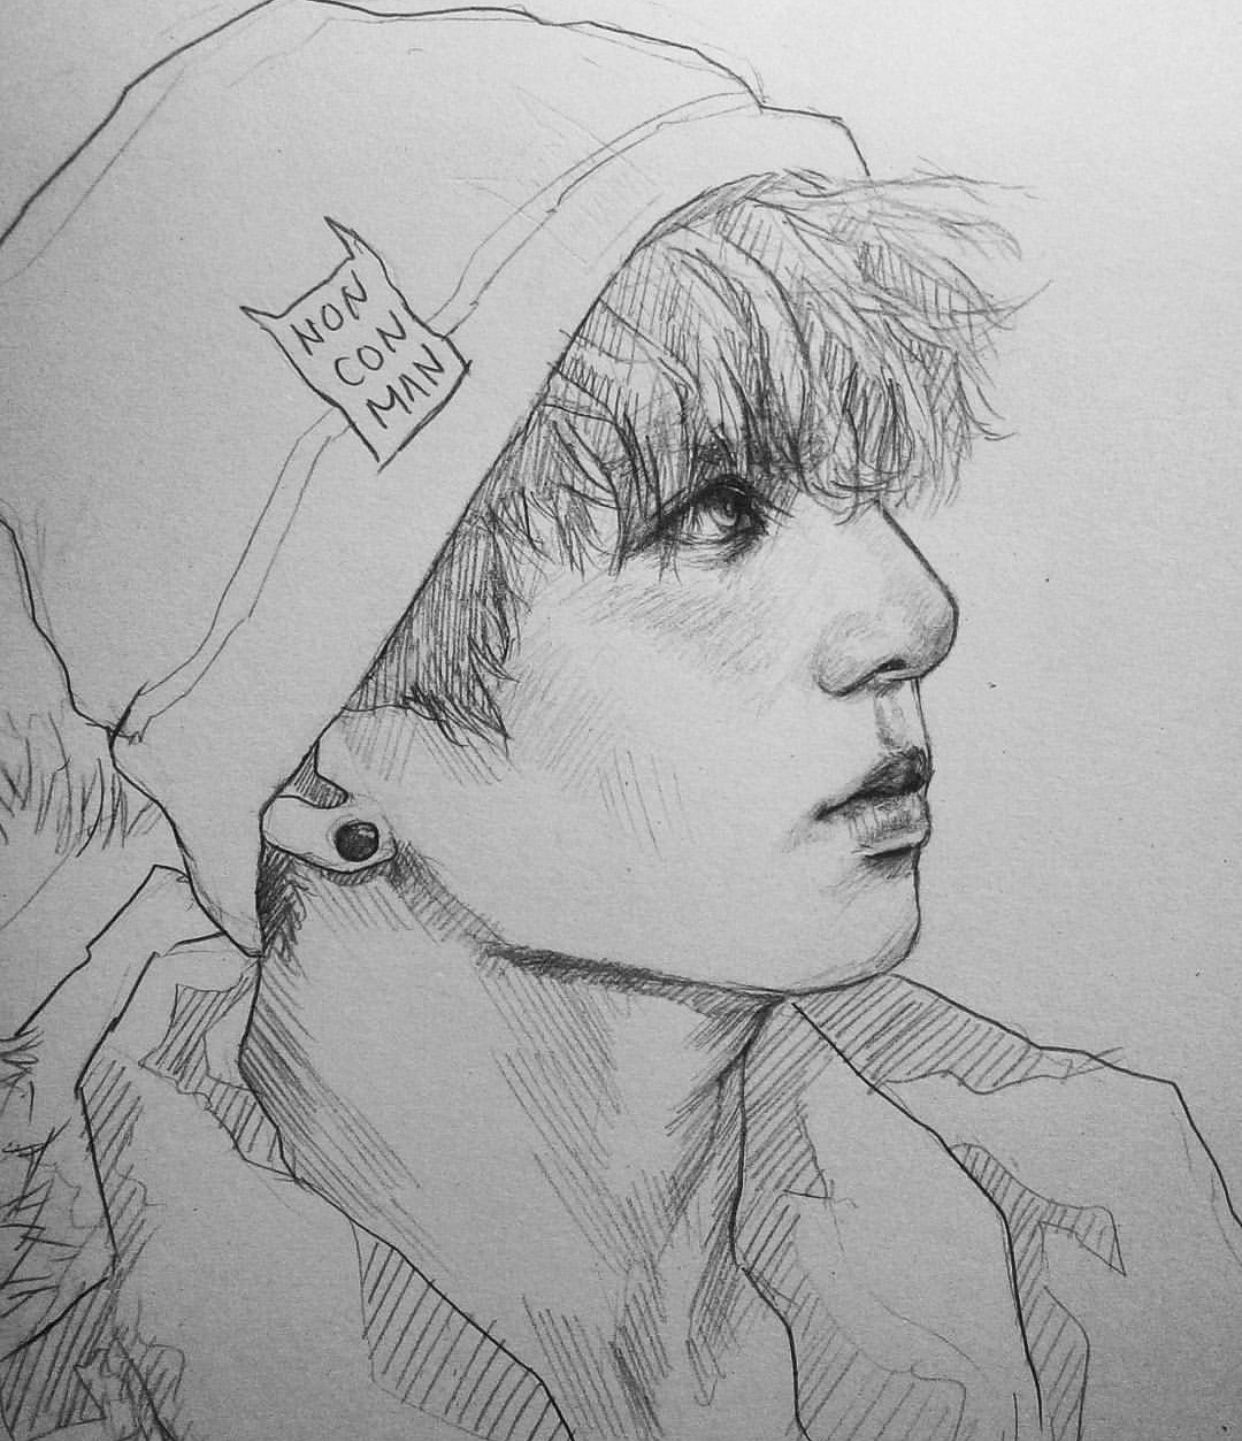 Jungkook Bts Drawings: Art By - Nonco - Instagram @nonconman